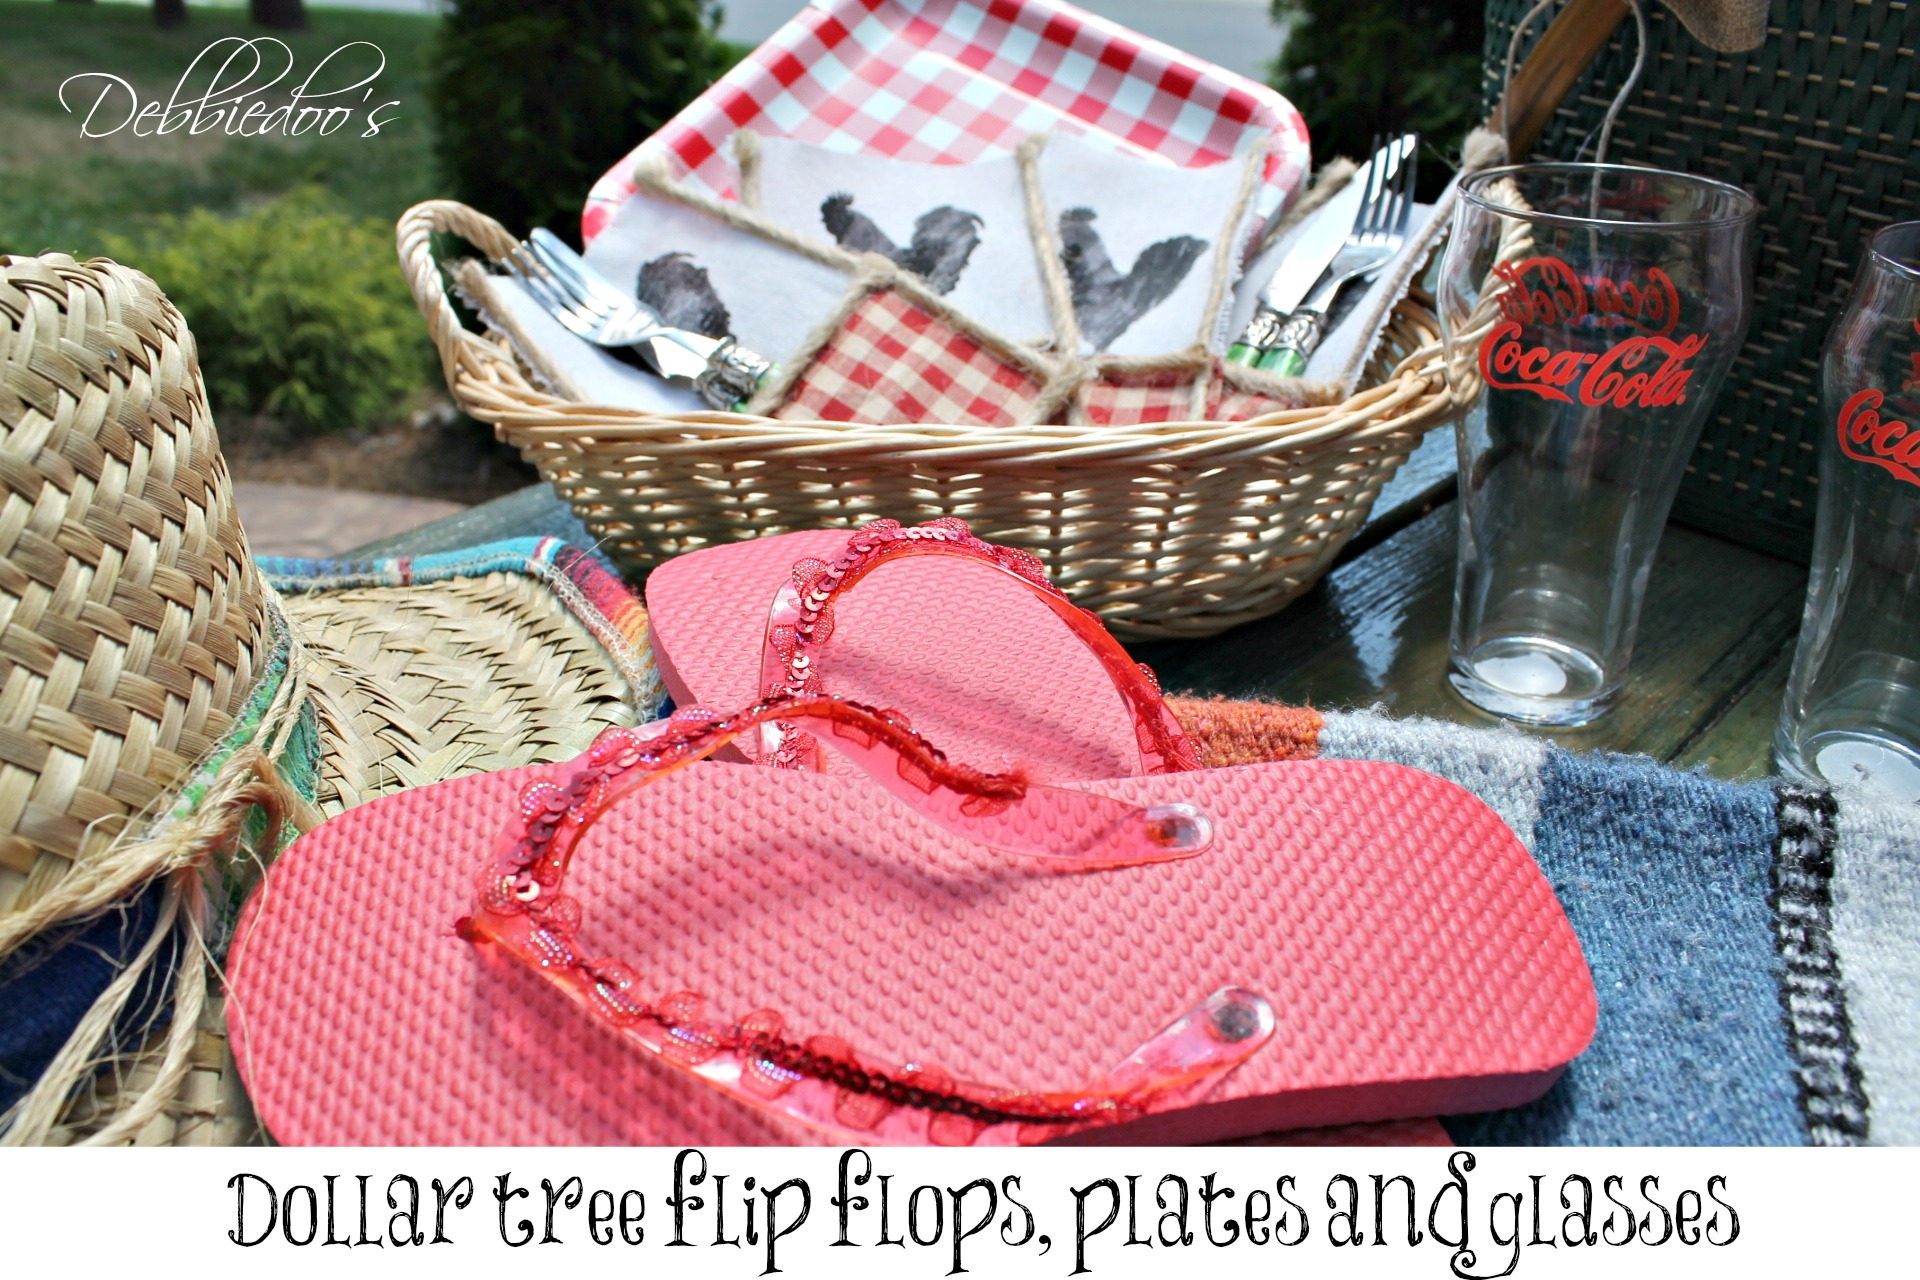 picnic on the patio with a repurposed vintage picnic basket and dollar tree flip flops, plates and glasses